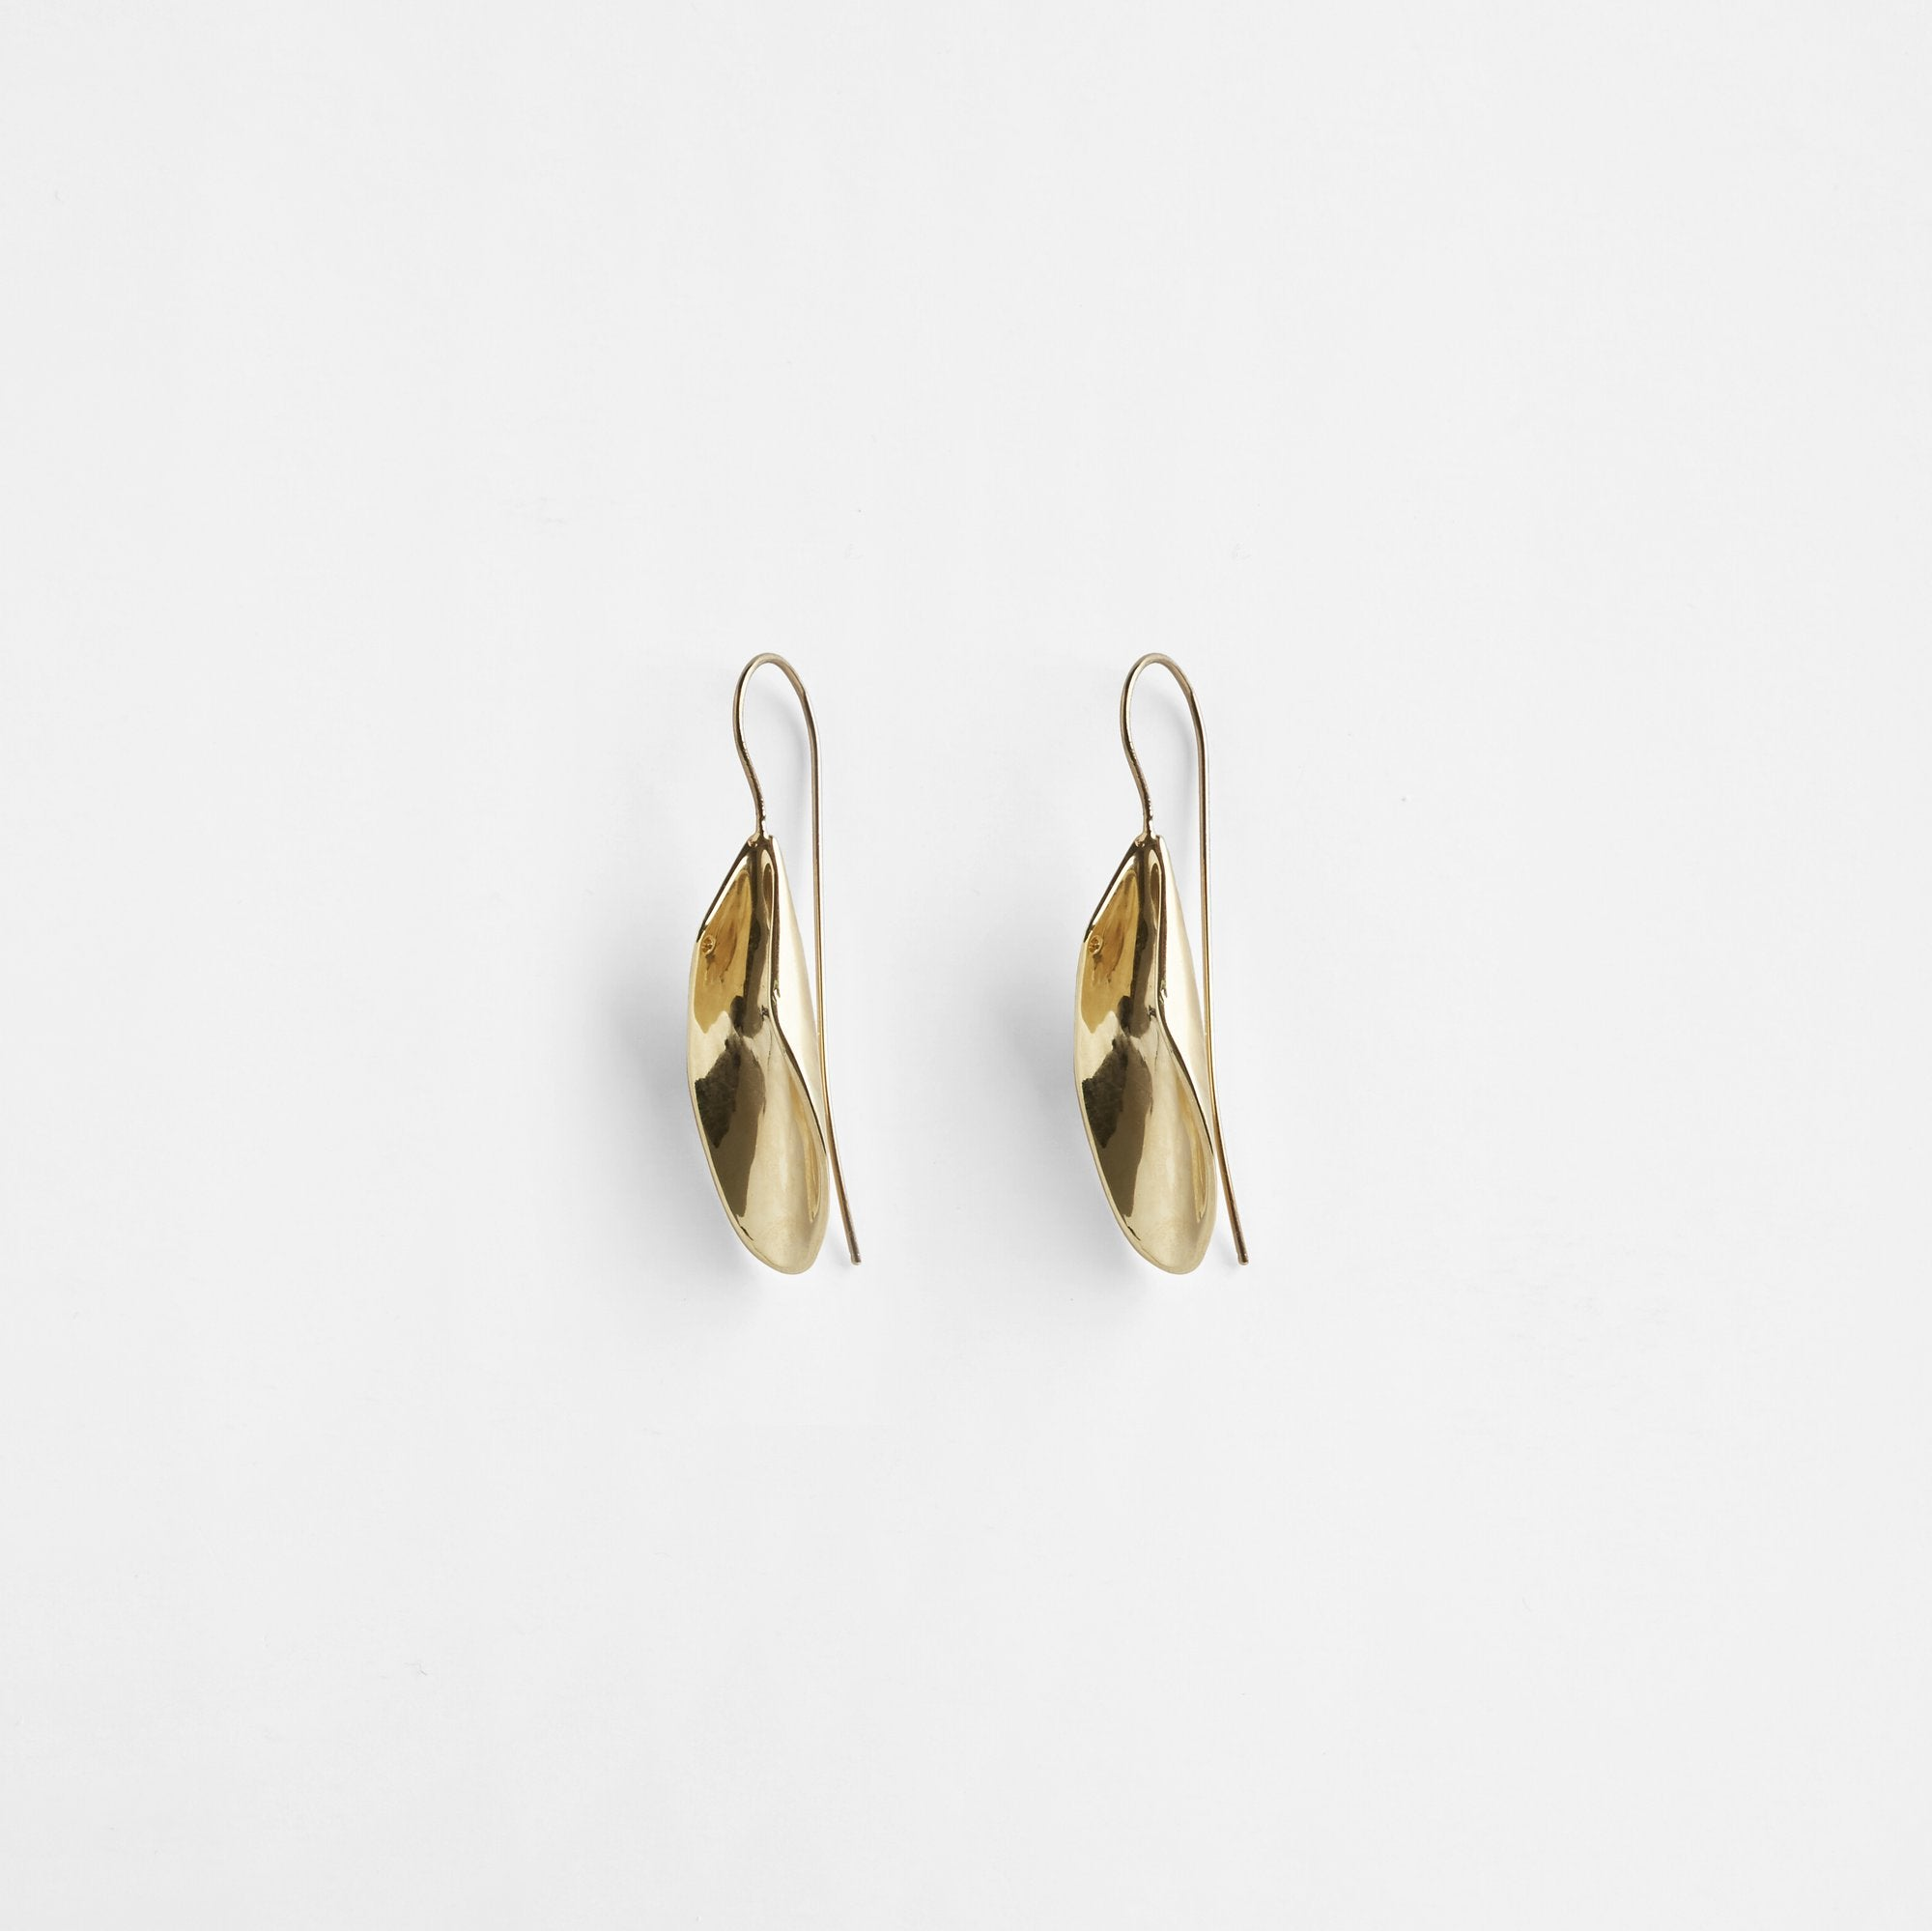 Memory Sea Earrings Pichulik Earrings - White Label Project